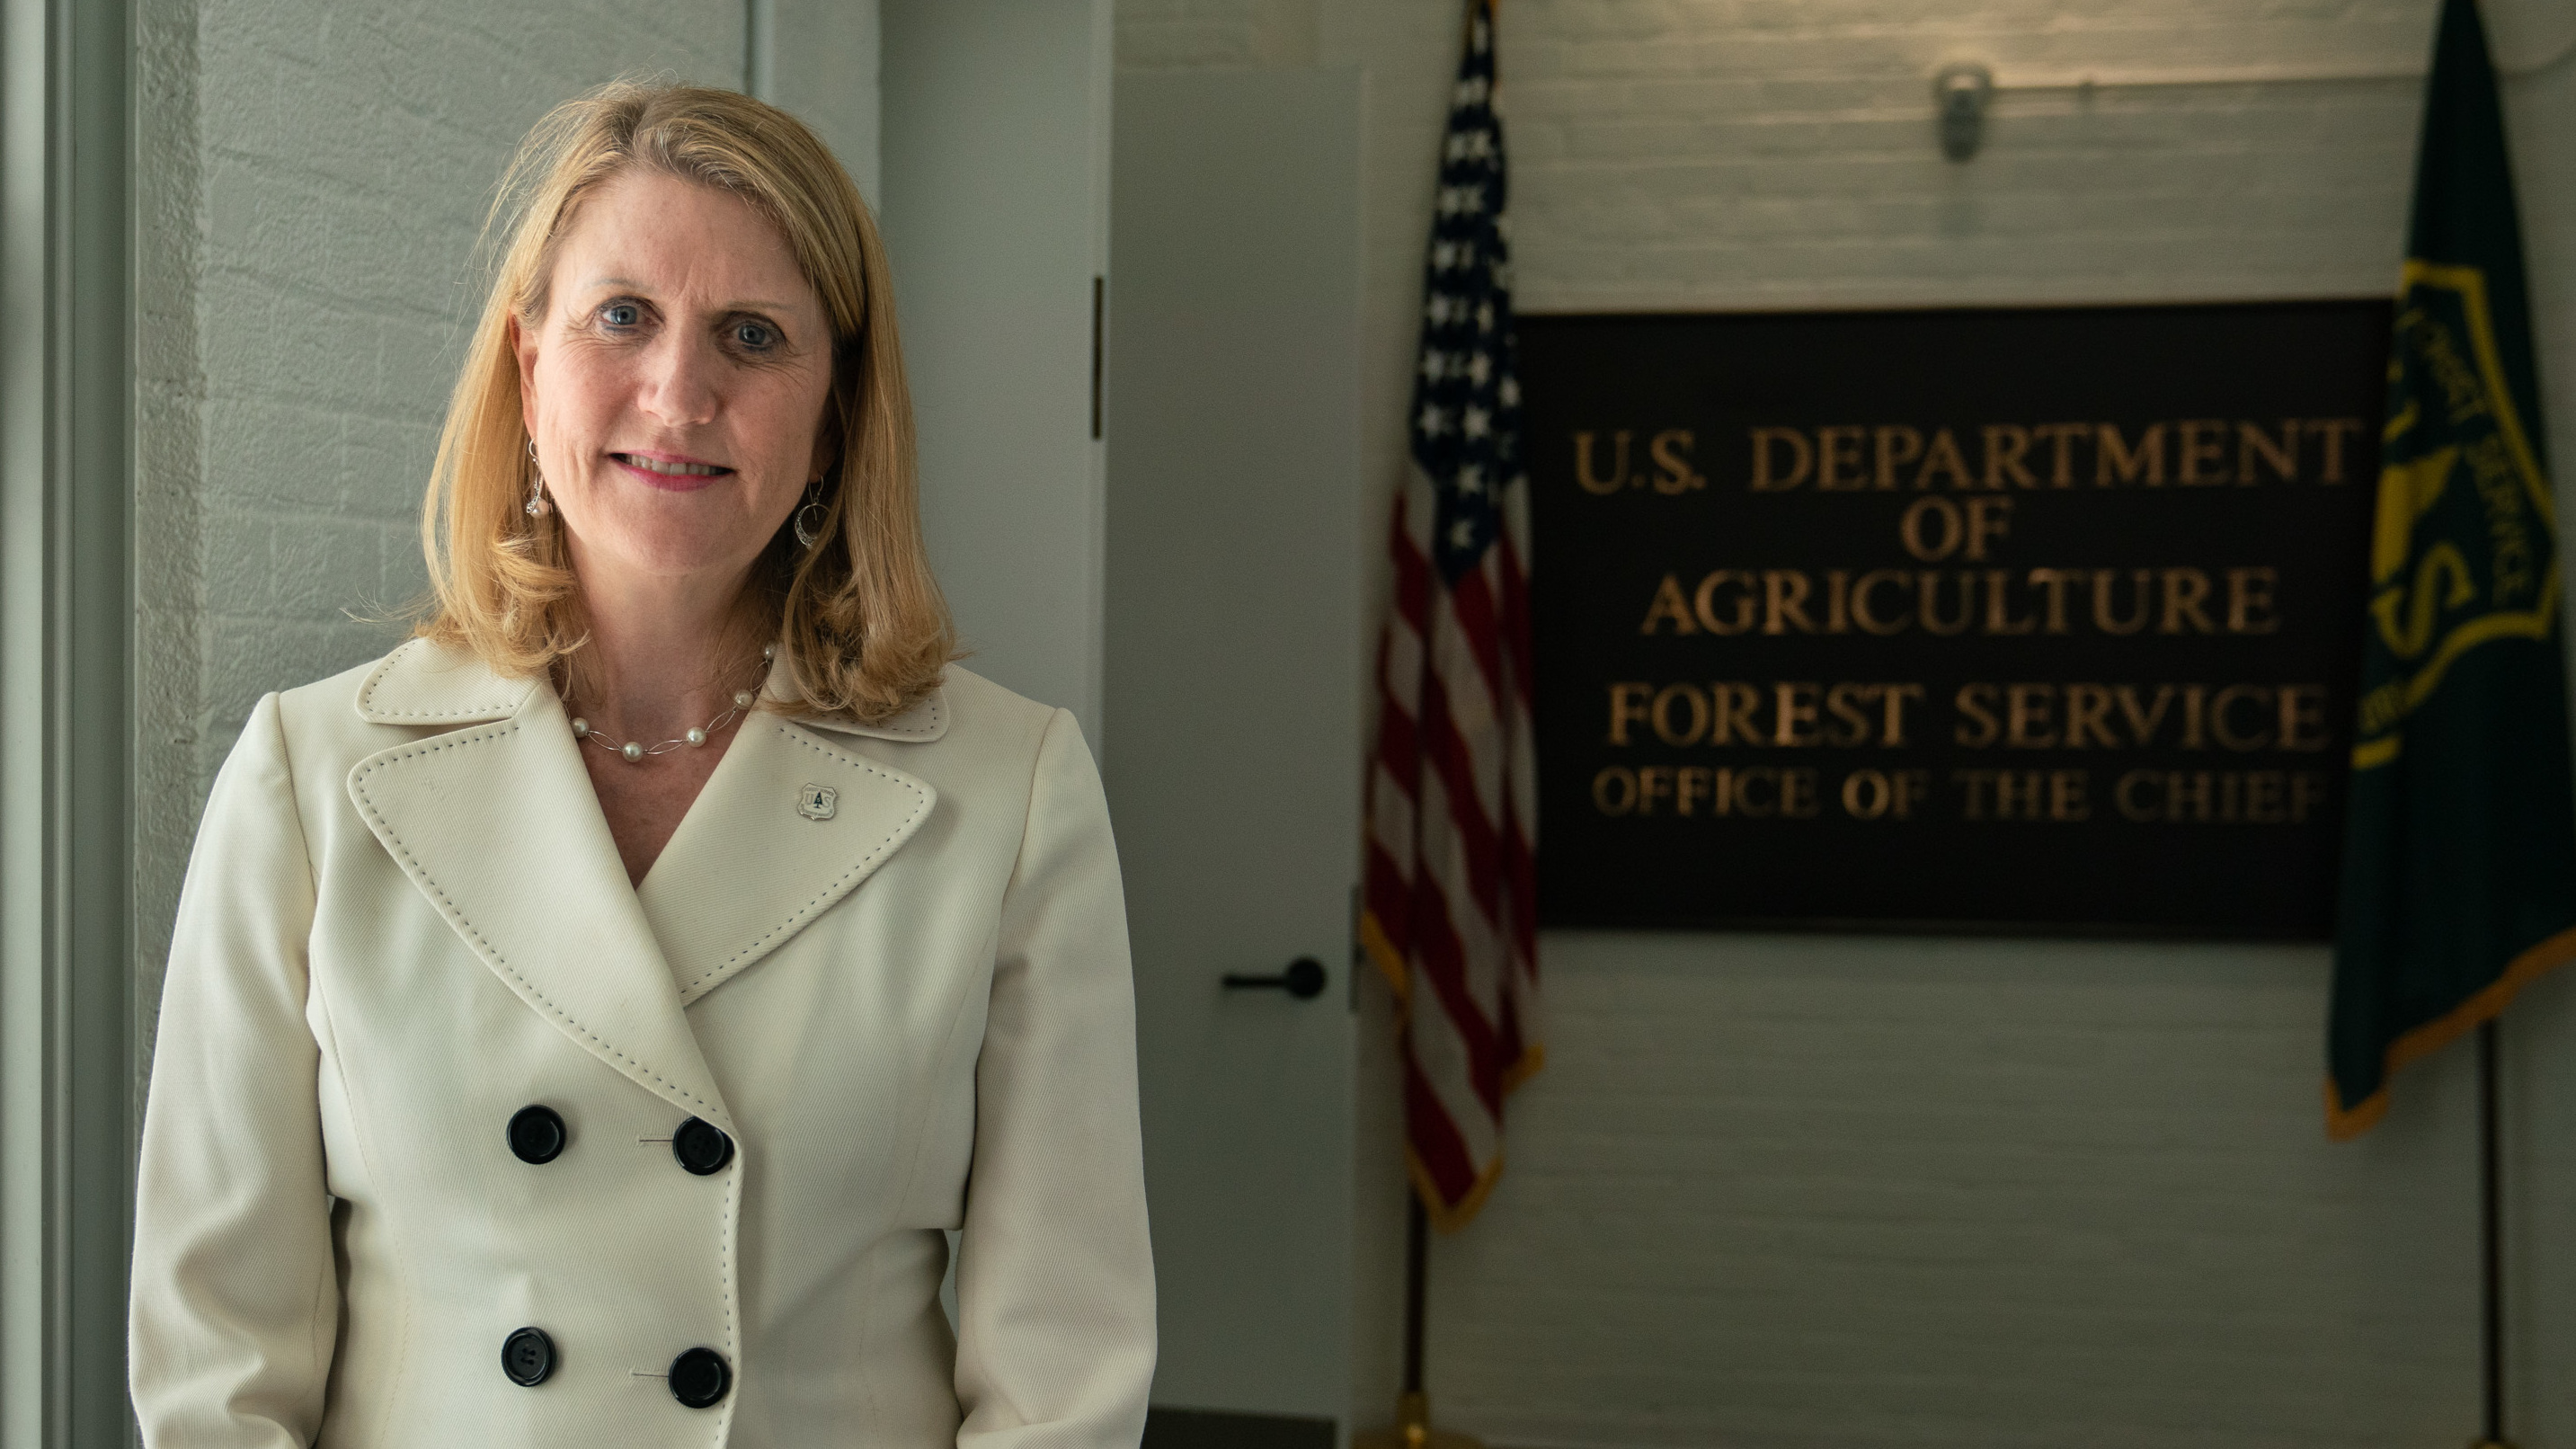 Vicki Christiansen, the chief of the U.S. Department of Agriculture's Forest Service, stands outside of her office in Washington, D.C.